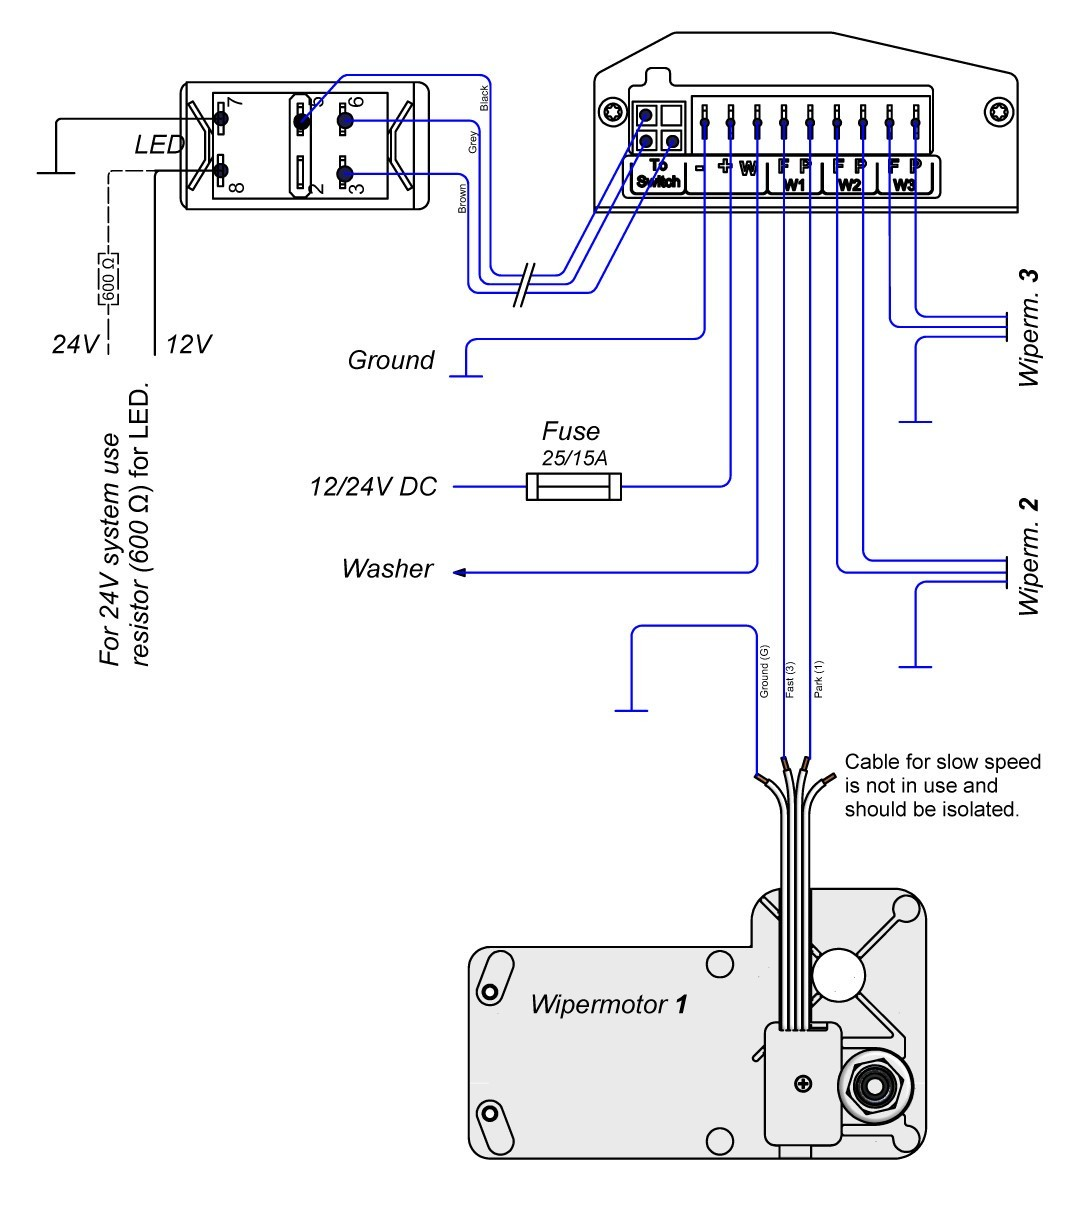 wexco wiper motor wiring diagram wiring diagram review Sprague Wiper Motor Wiring Diagram